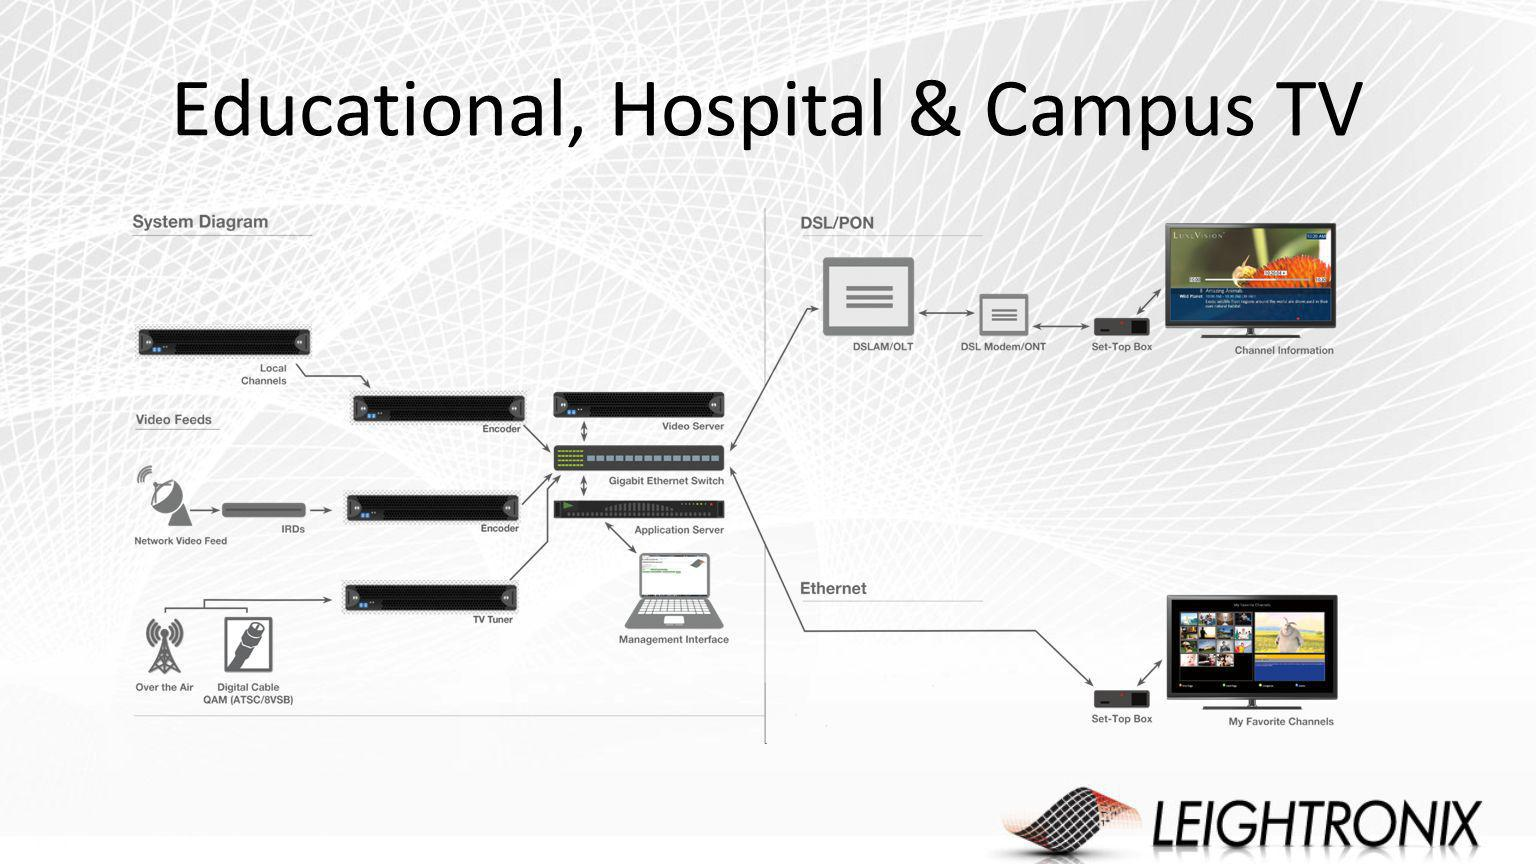 Educational, Hospital & Campus TV